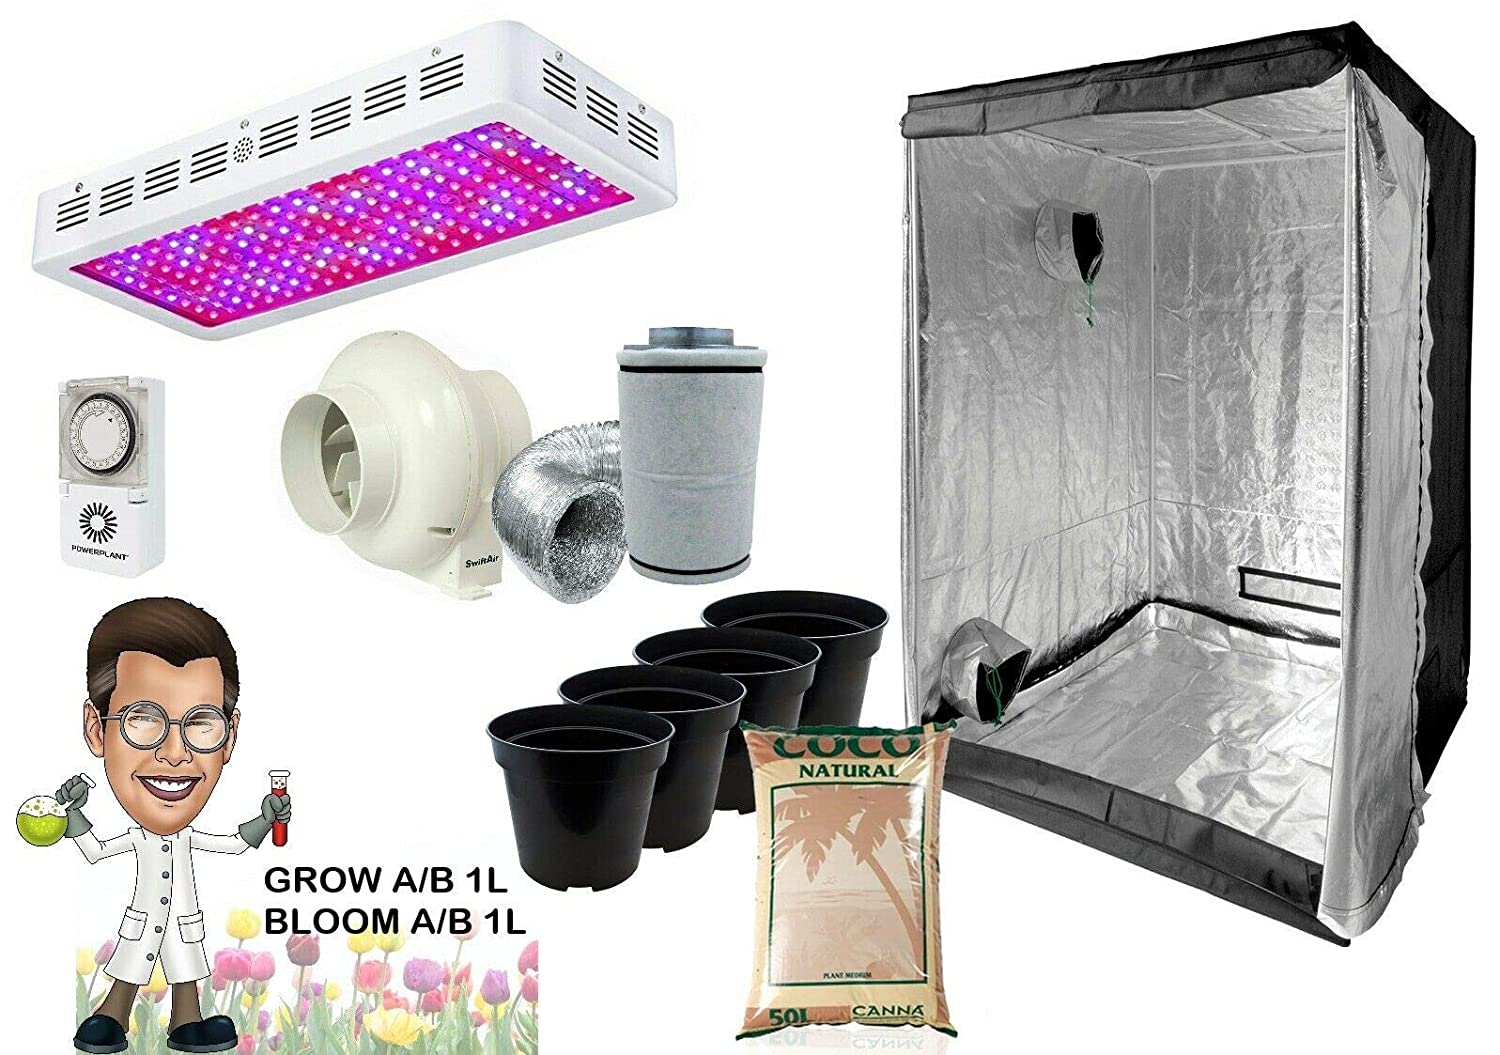 Canna complet Hydroponique GROW ROOM TENT Fan Filter Light Kit 600 W 120x120x200